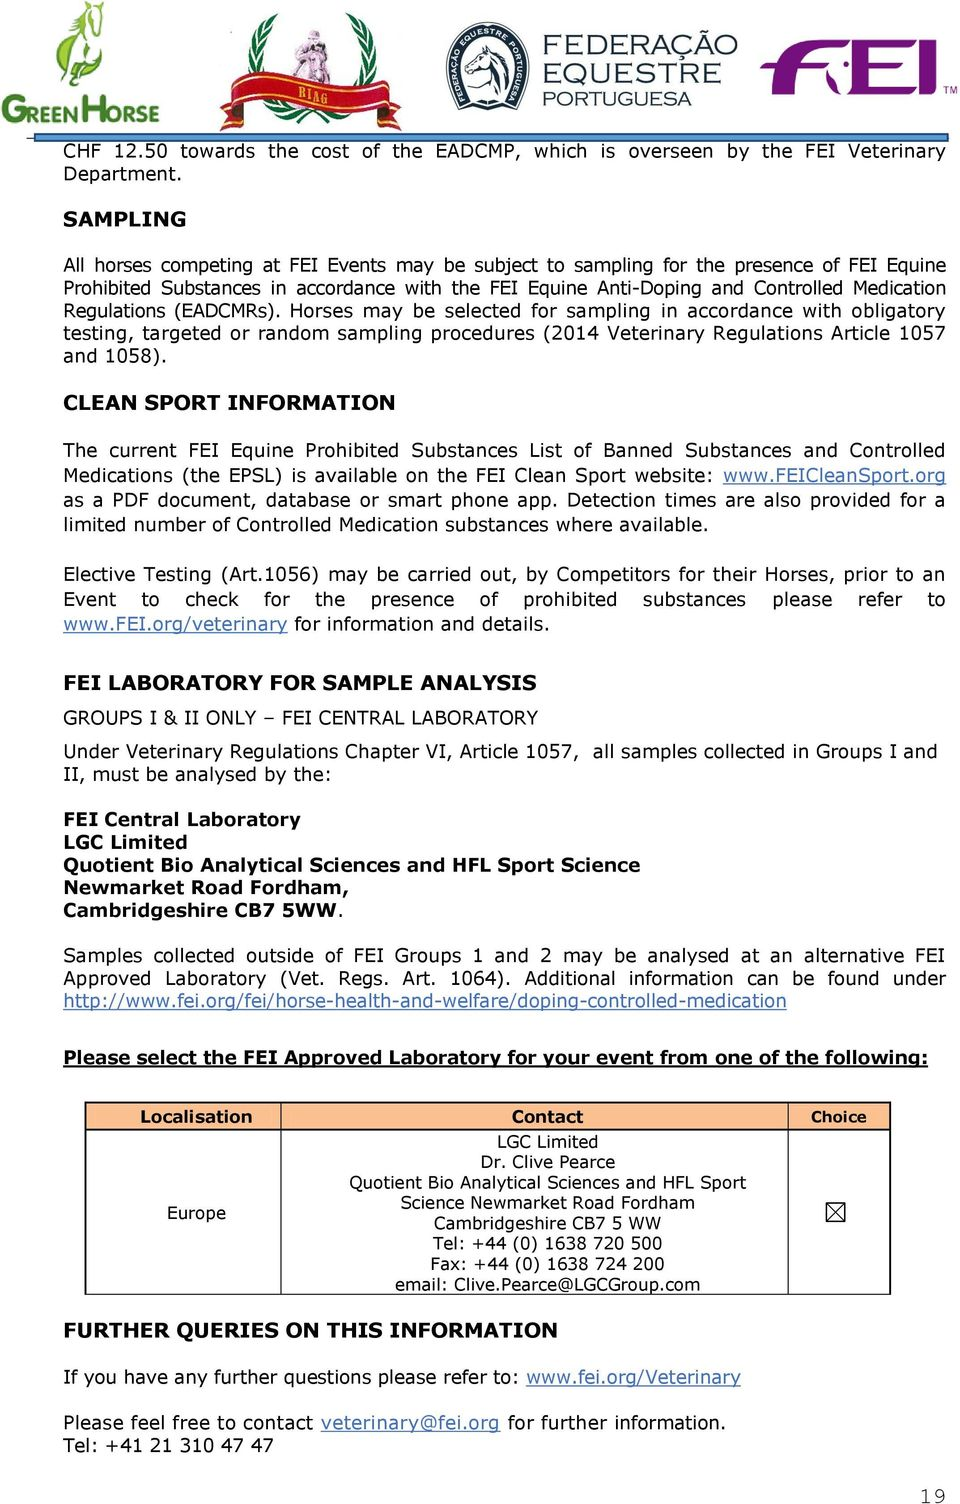 Regulations (EADCMRs). Horses may be selected for sampling in accordance with obligatory testing, targeted or random sampling procedures (2014 Veterinary Regulations Article 1057 and 1058).